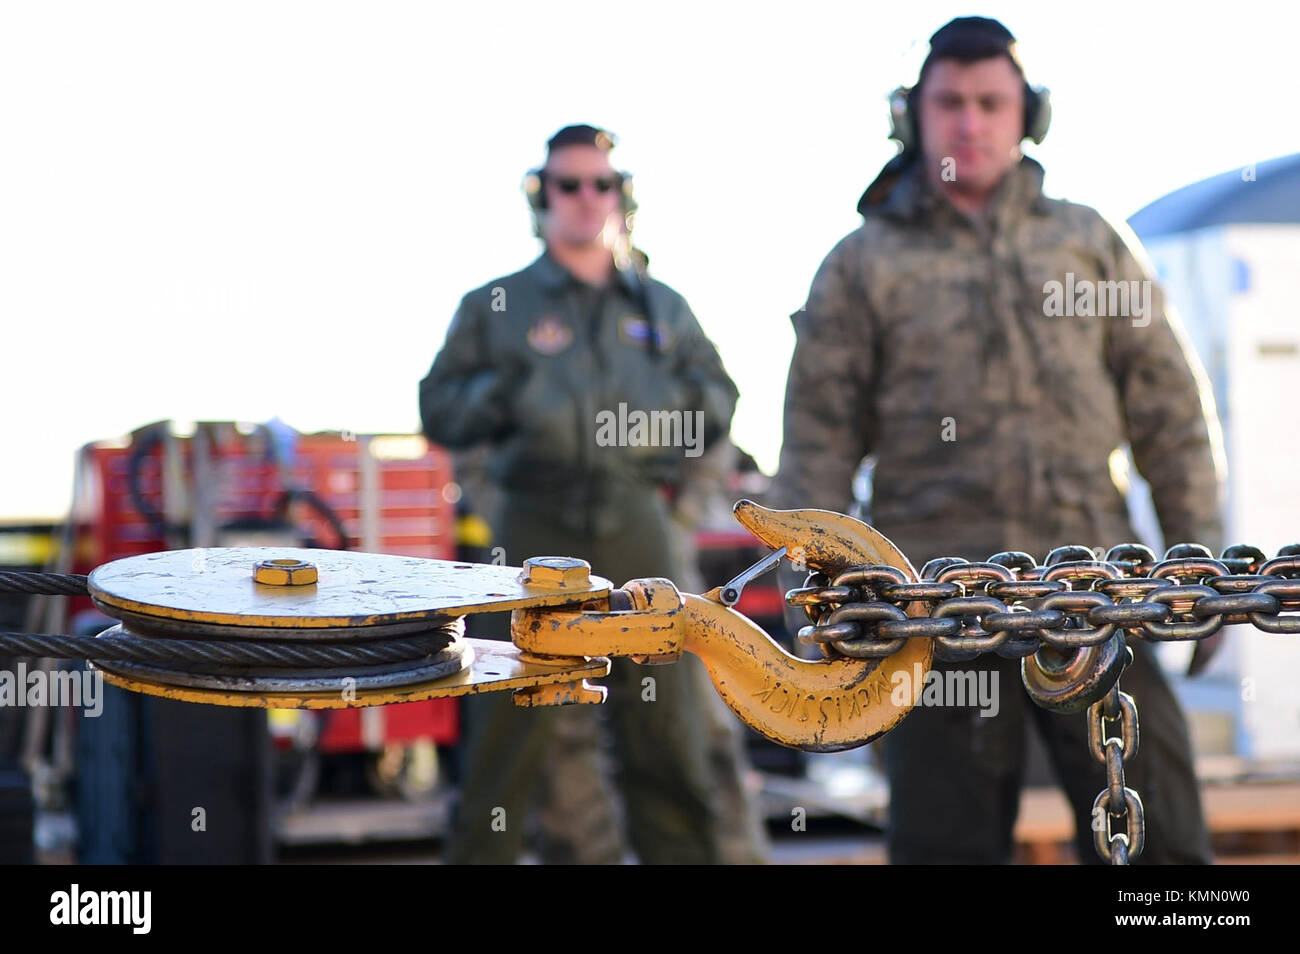 Airmen from the 337th Airlift Squadron look on as a wench is used to tow the Geostationary Operational Environmental - Stock Image